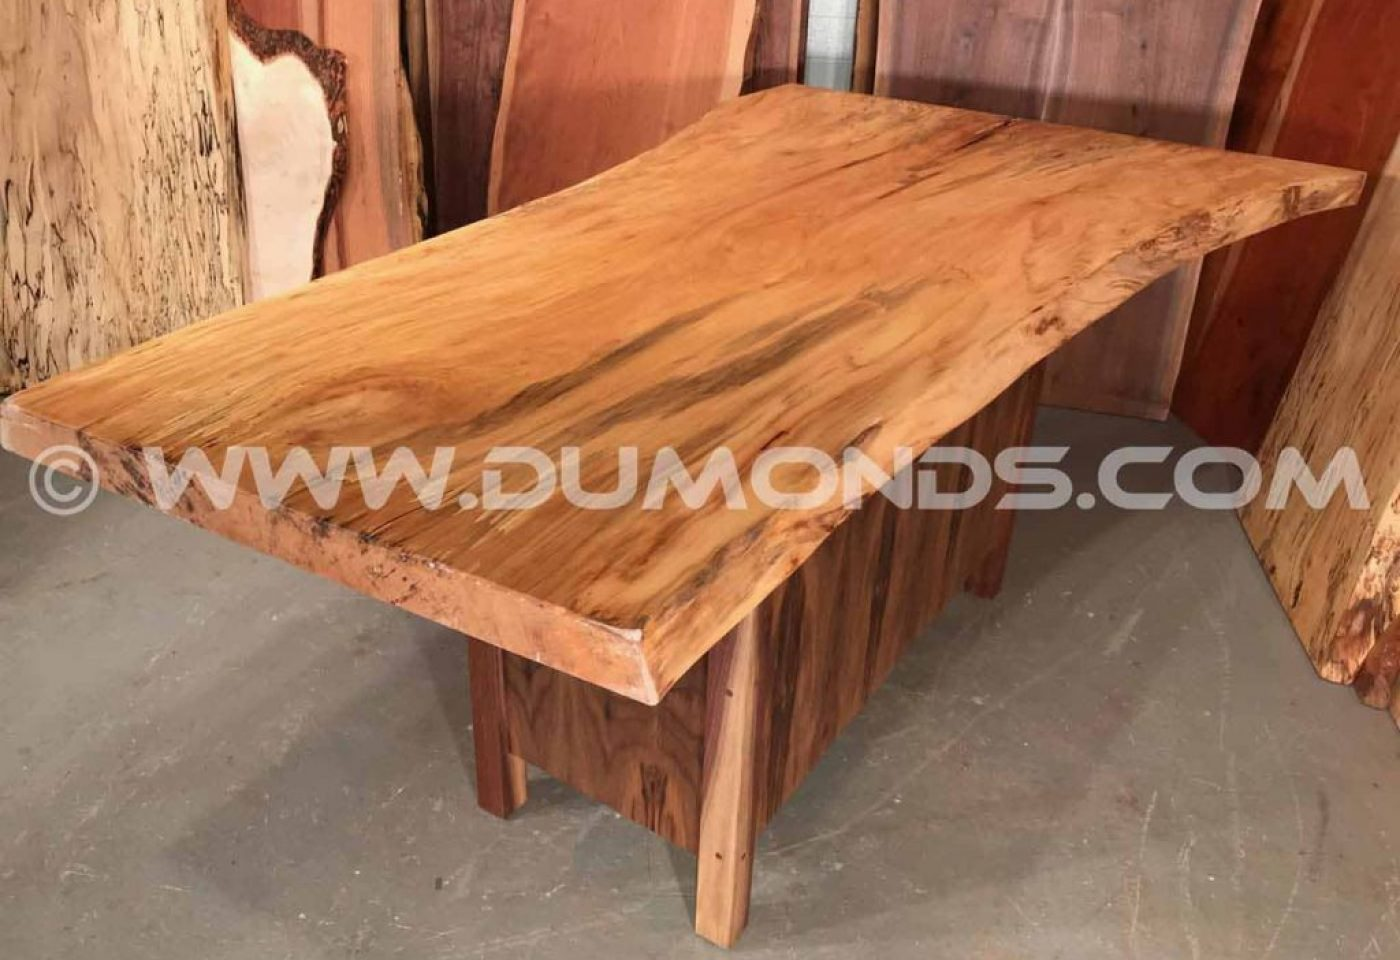 RECYCLED URBAN SYCAMORE TABLE WITH WALNUT PEDESTAL BASE